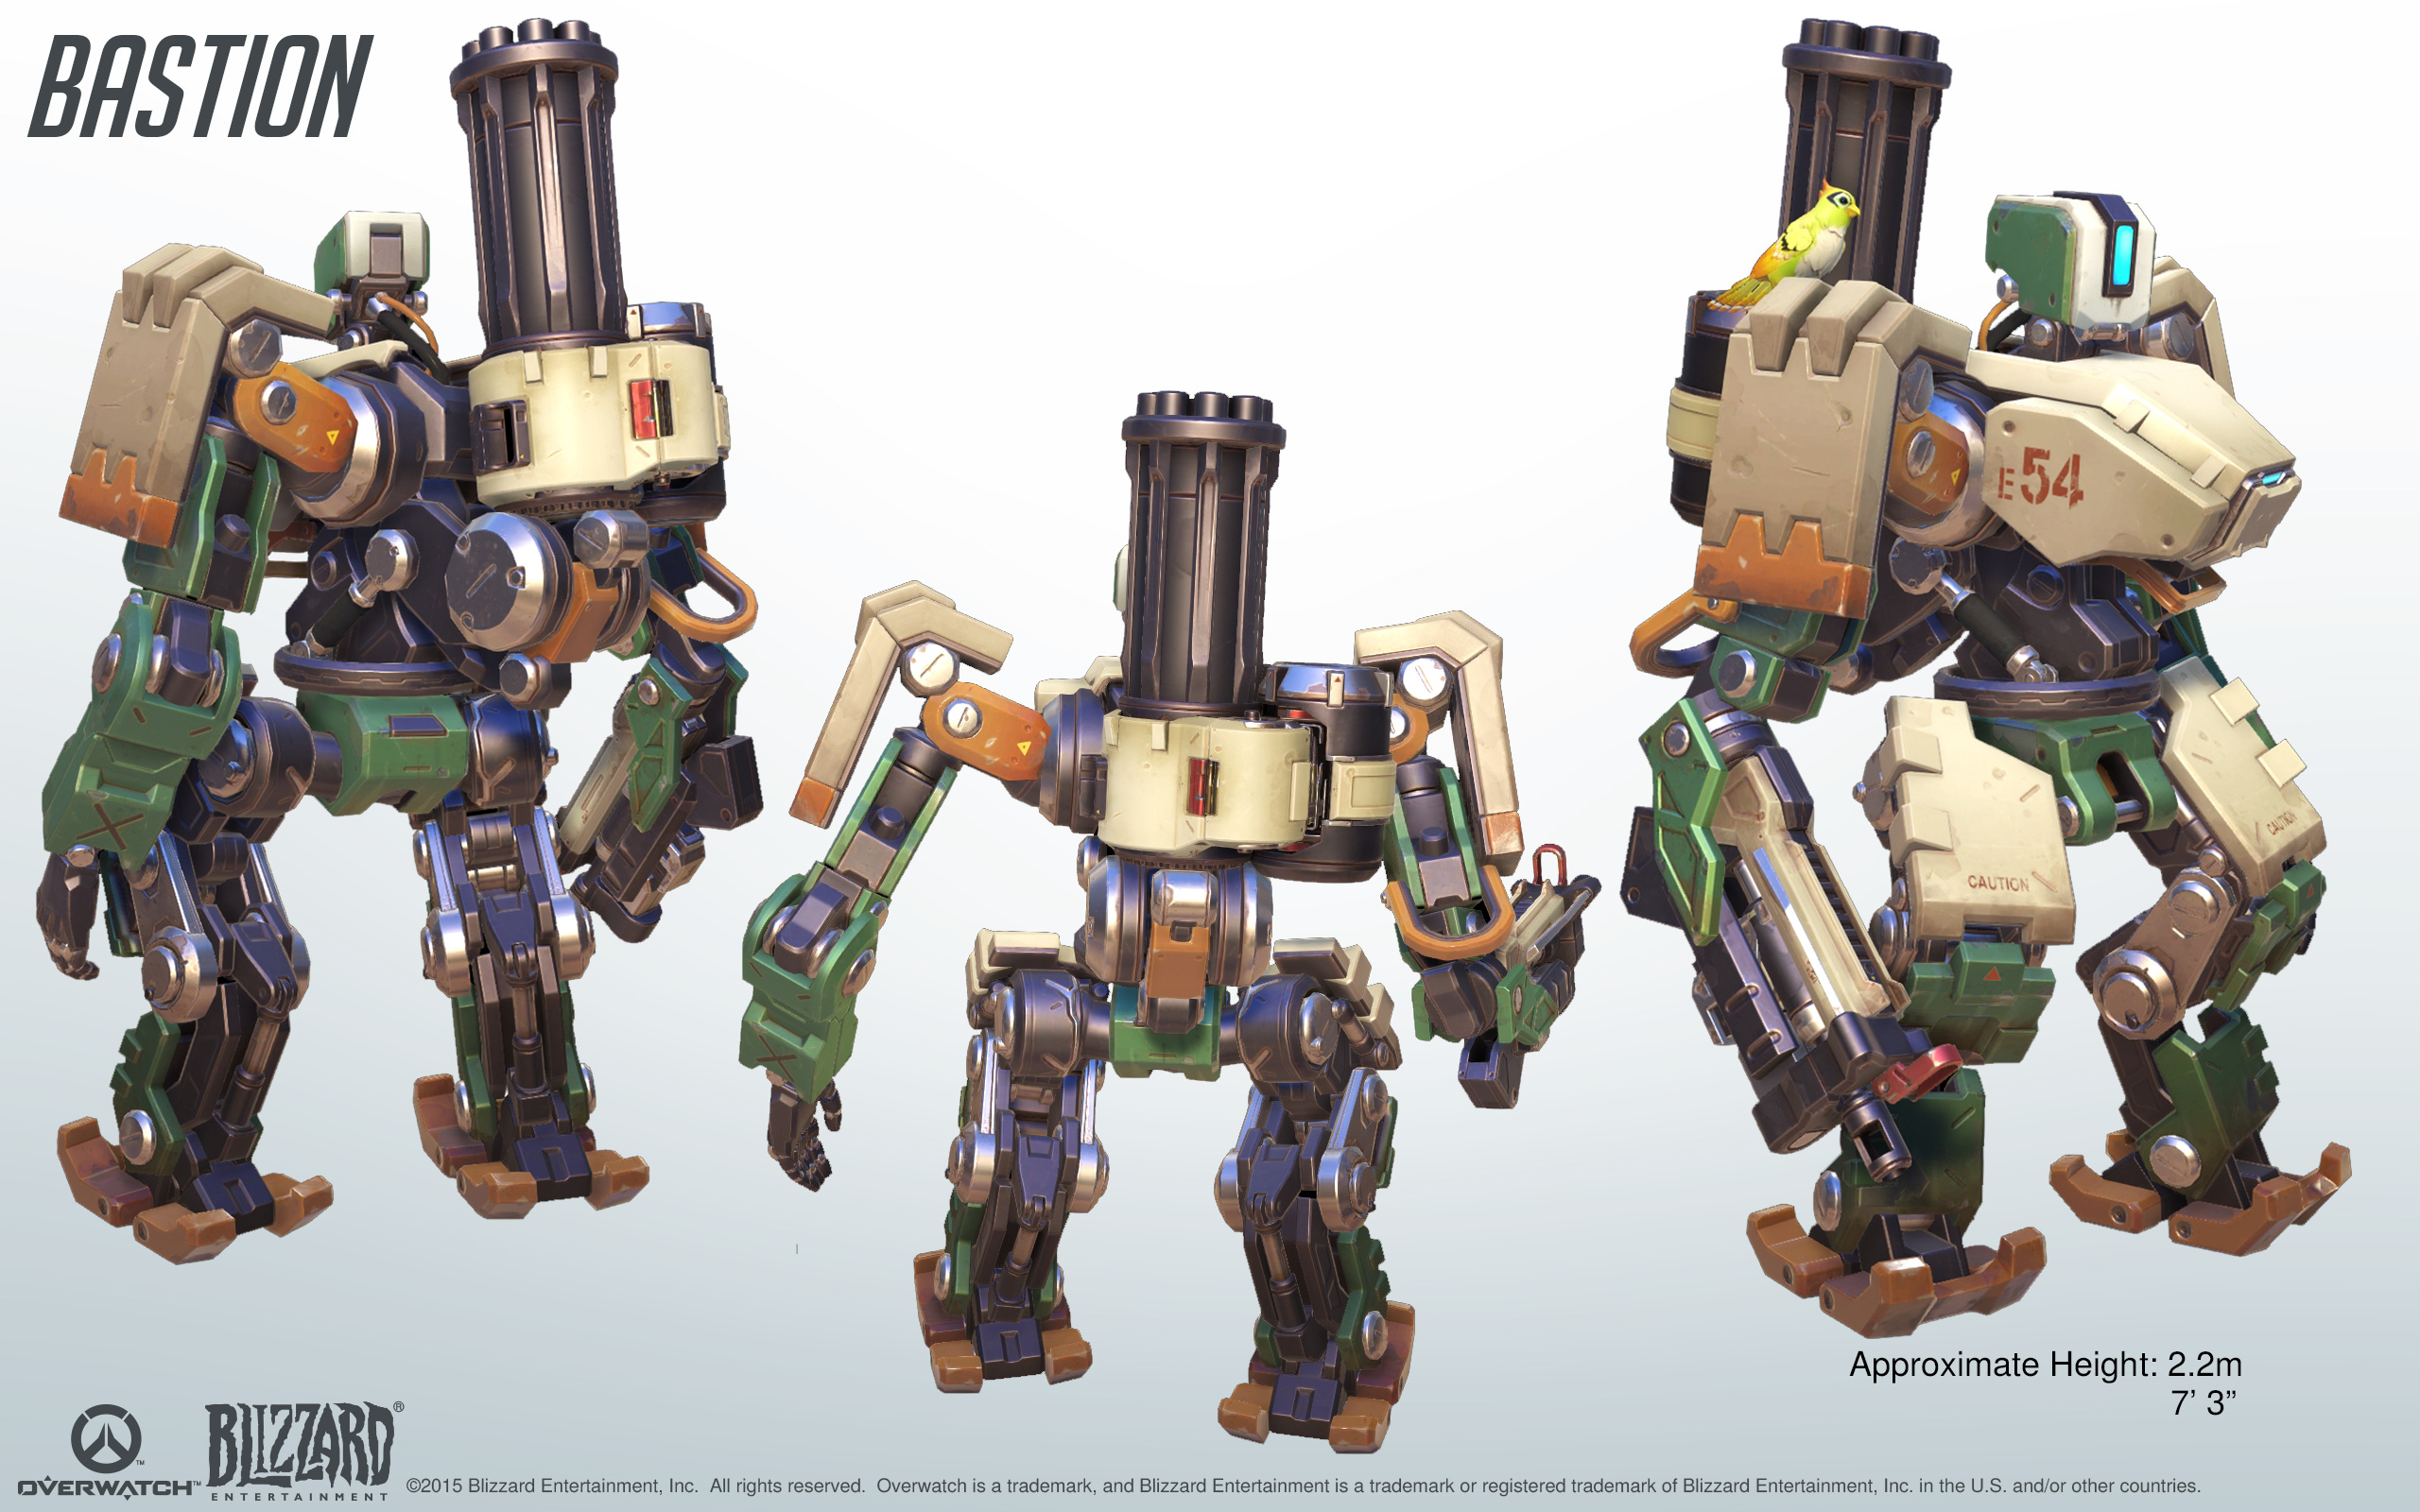 Bastion Cosplay Reference Guide 3 Overwatch Overwatch Bastion Overwatch Robot Overwatch